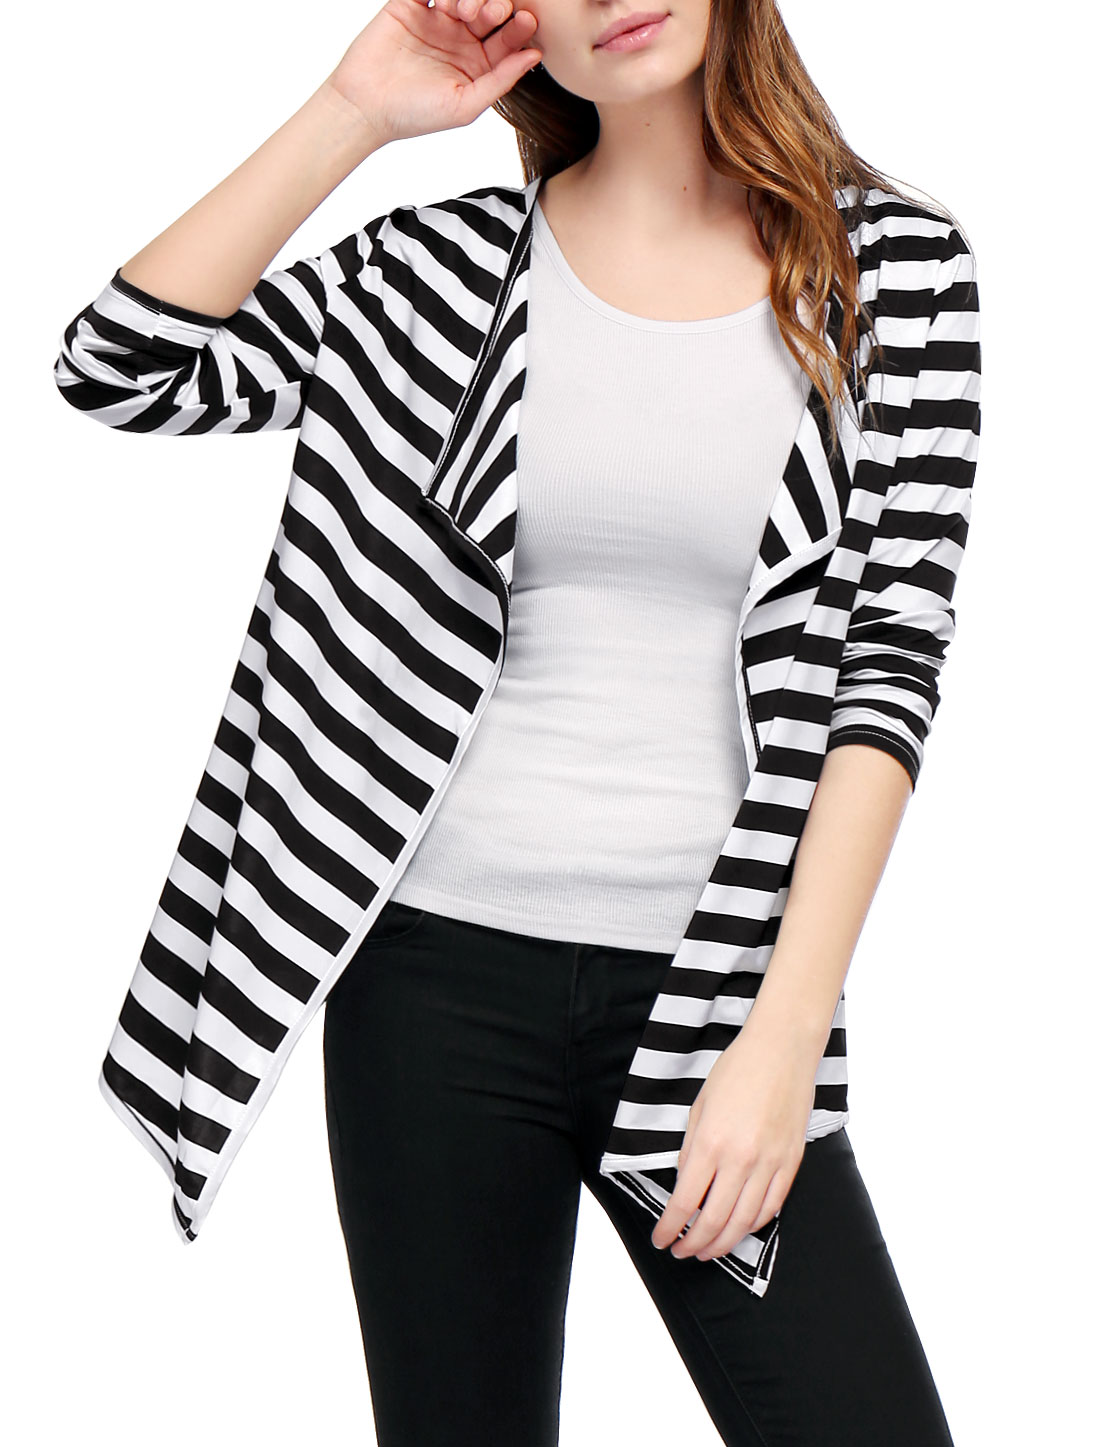 Lady Bracelet Sleeve Front Openning Stripes Black White Cardigan M